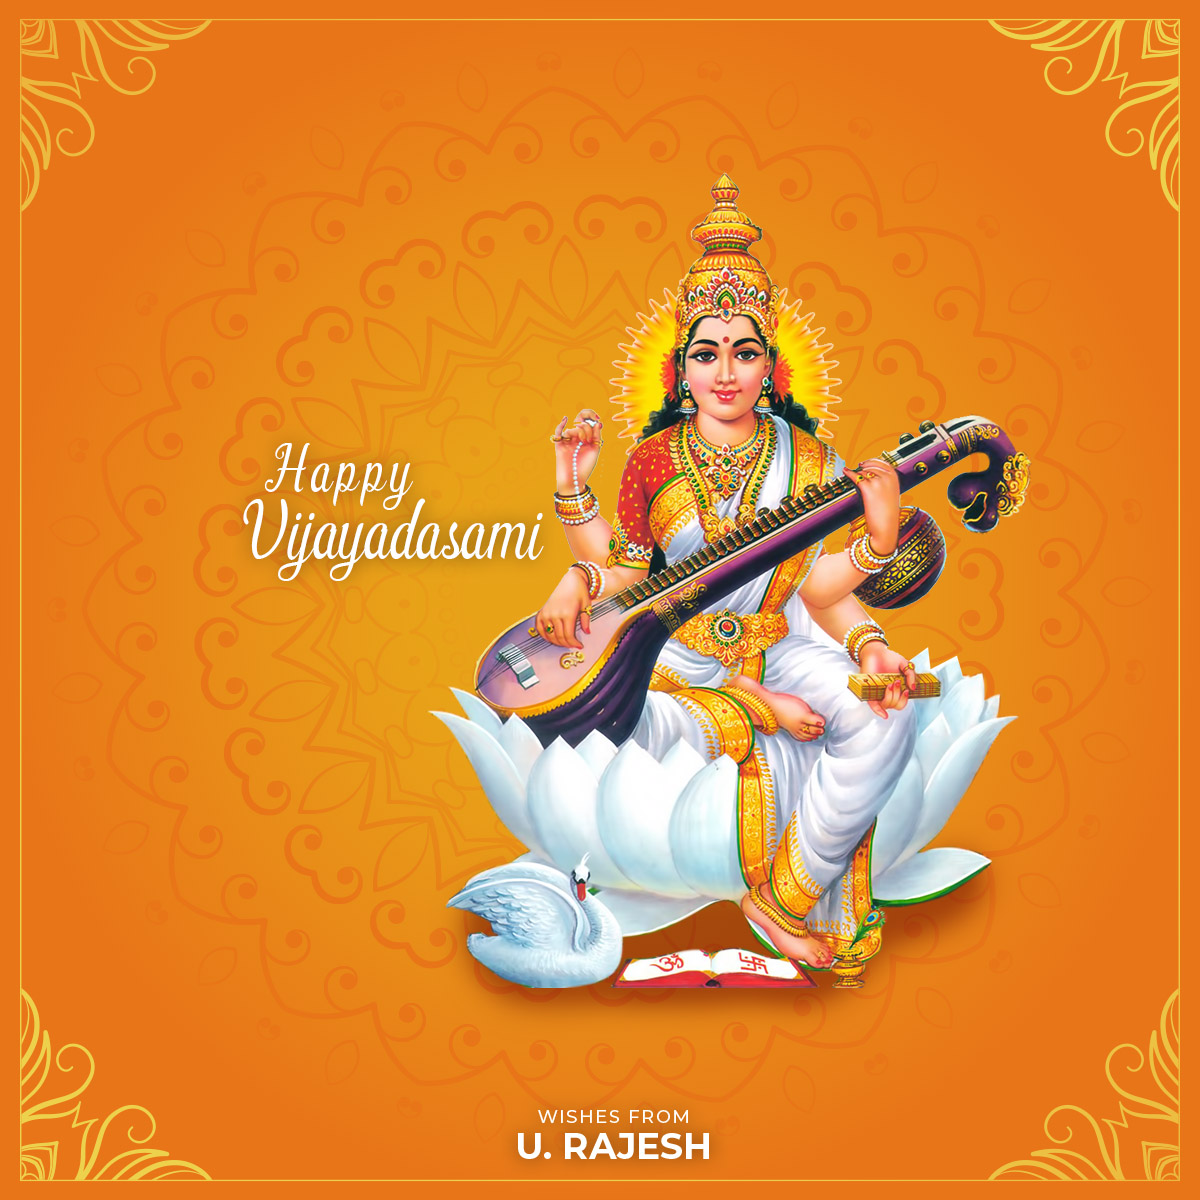 vijayadashami-wishes-from-mandolin-u-rajesh